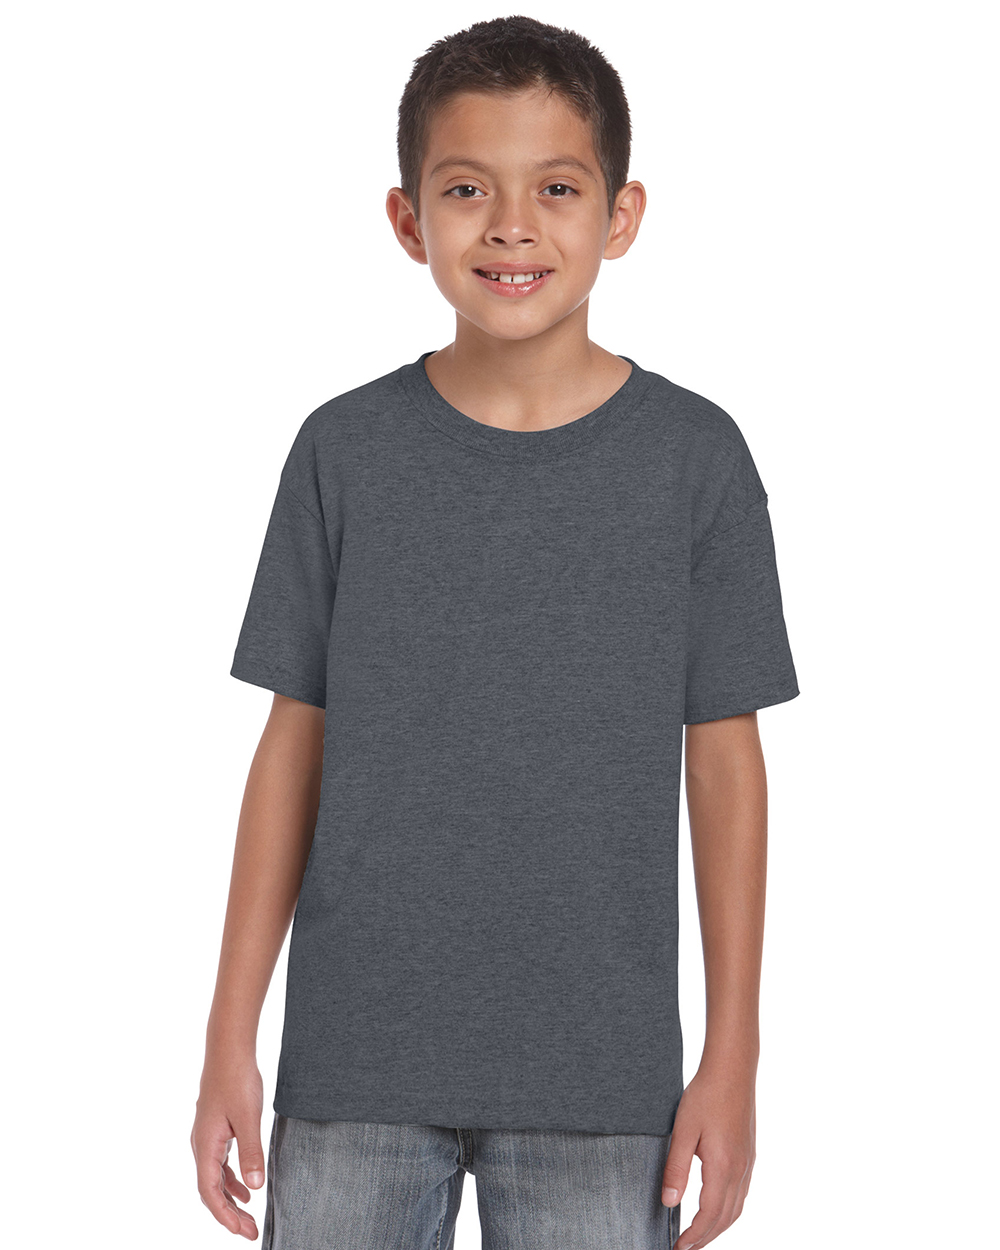 Gildan 8000B     DryBlend™    Classic Fit Youth T-Shirt    5.6 oz. 50% Cotton/50% DryBlend Polyester